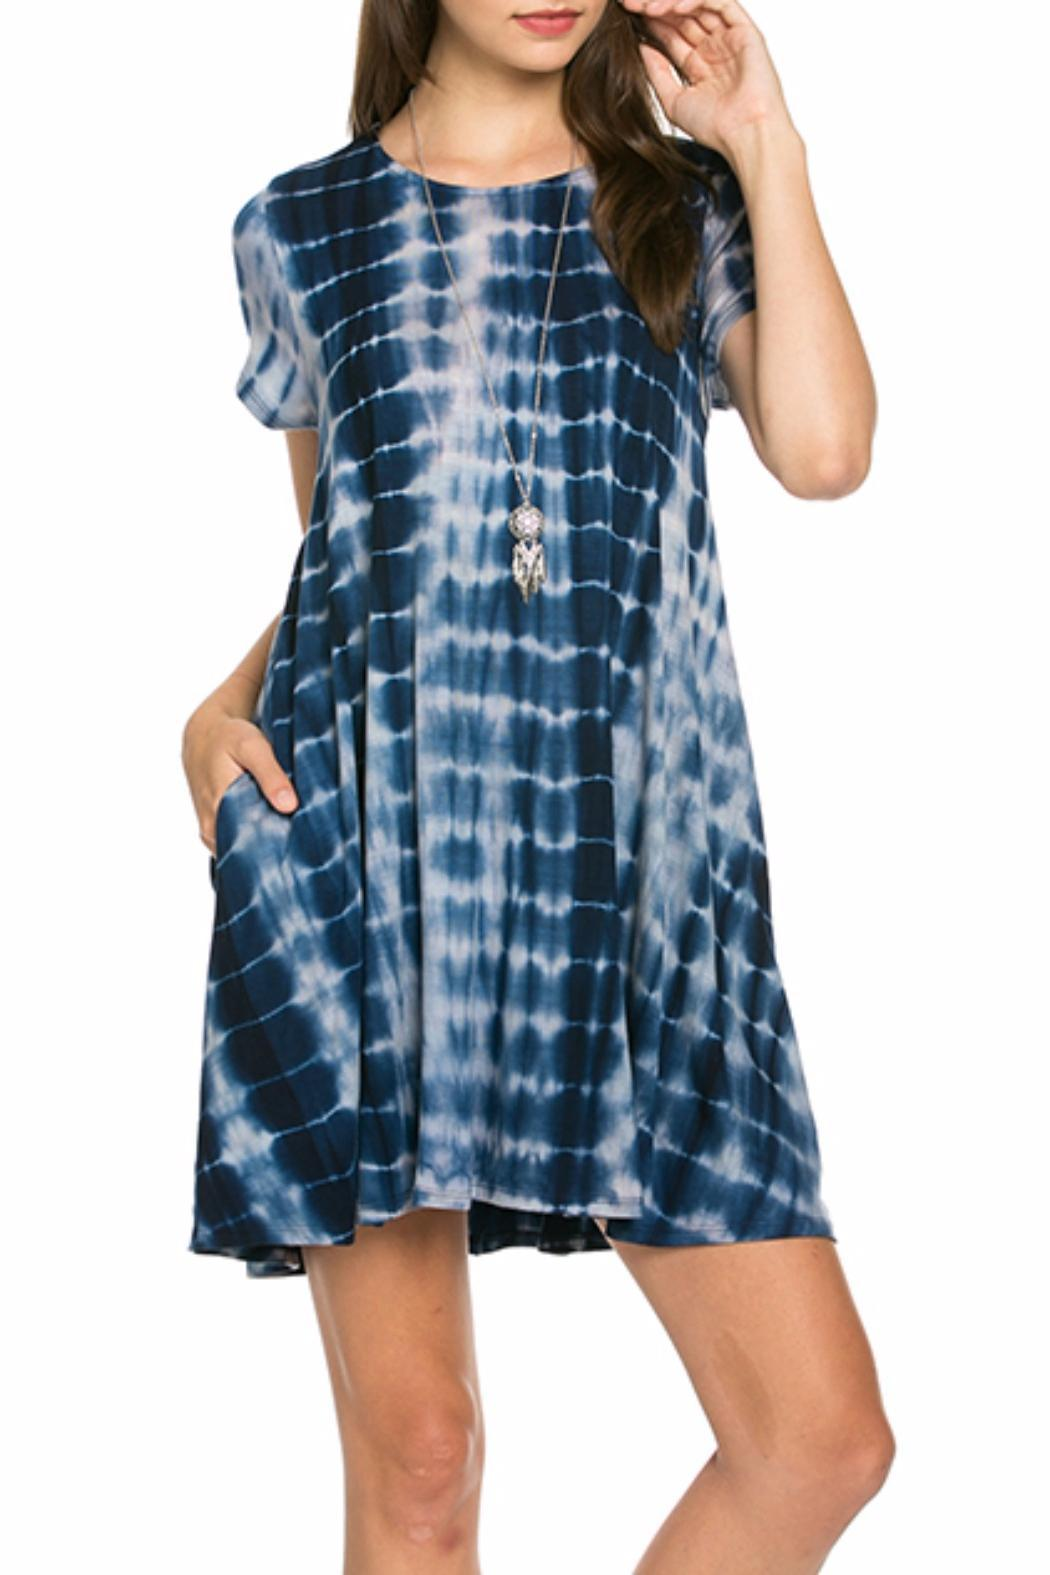 Mittoshop Tie Dye Swing Dress